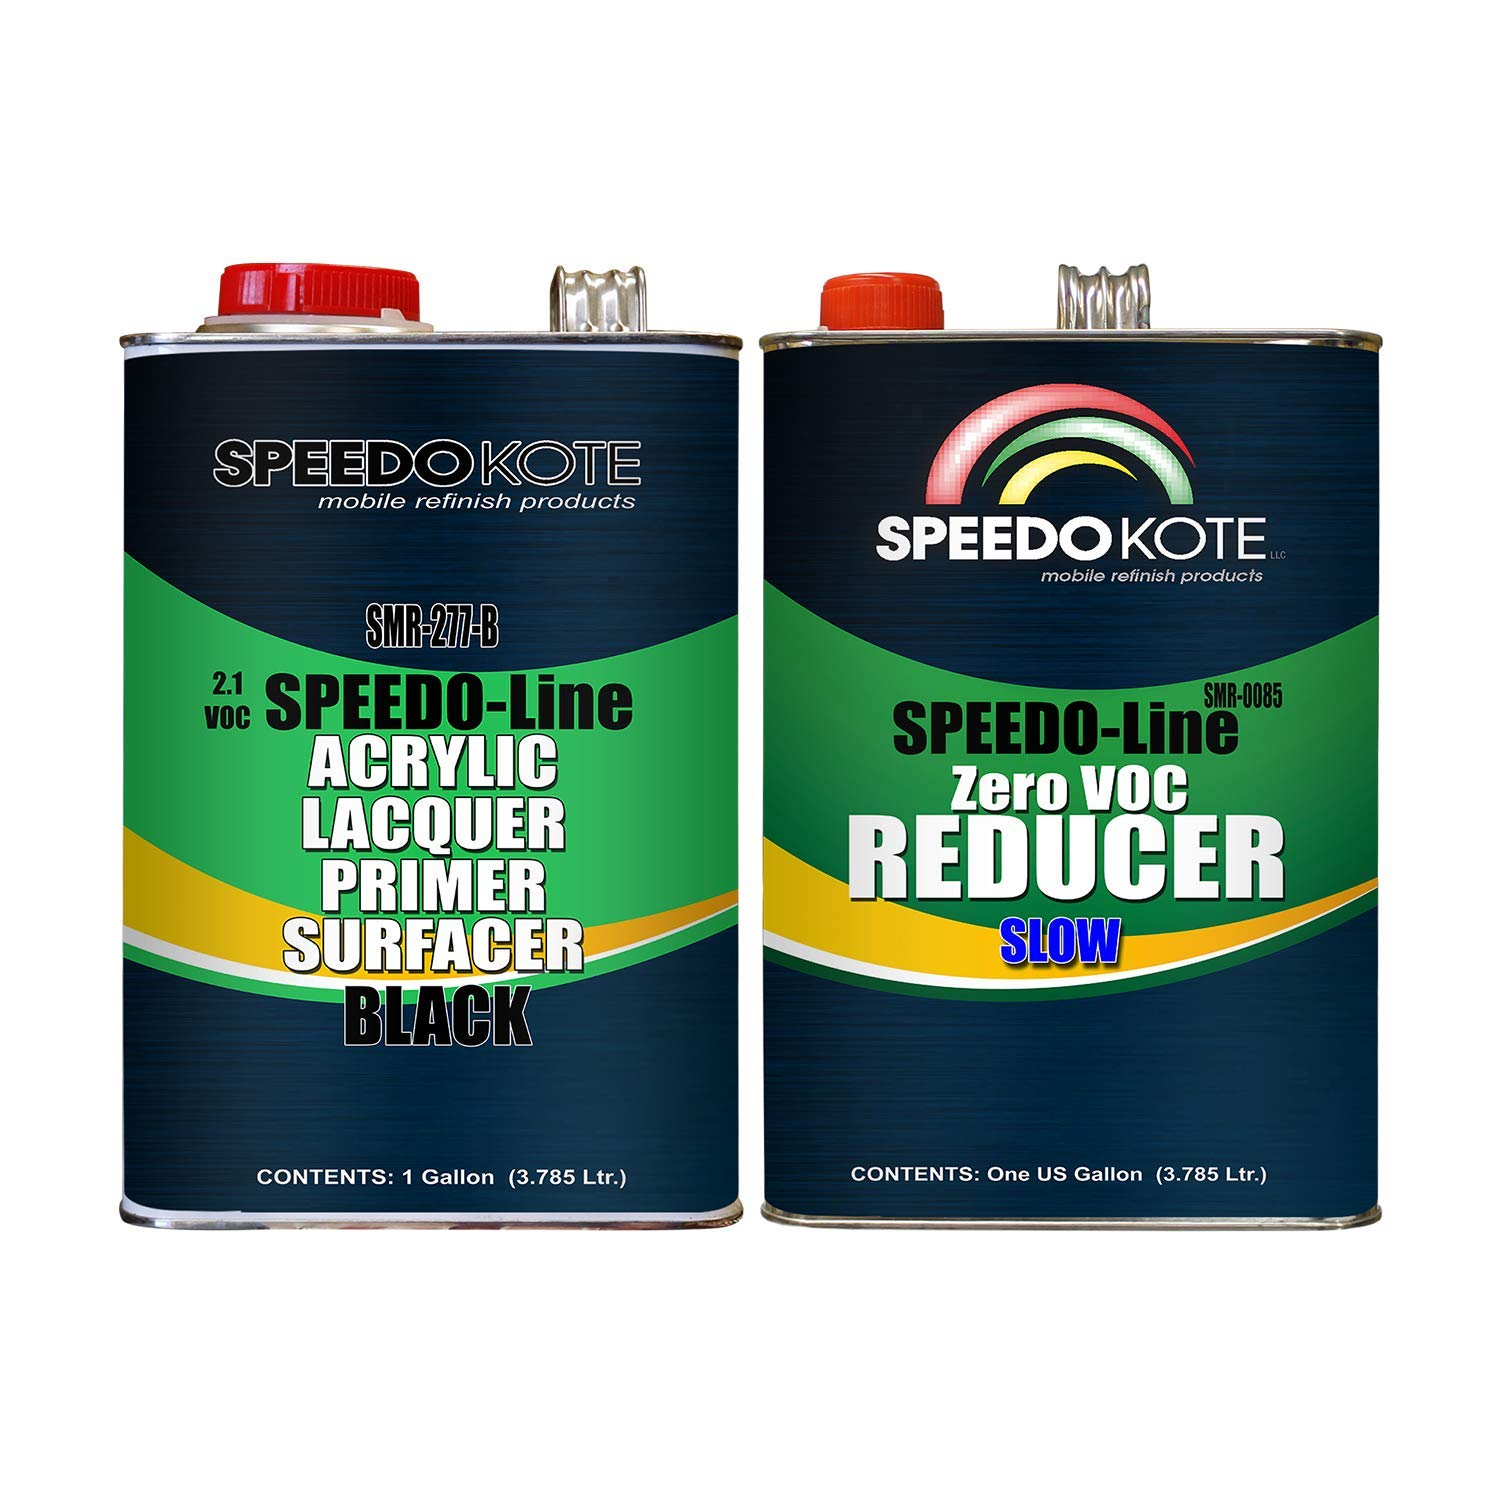 Speedokote 2.1 voc Acrylic Lacquer Primer Black 2 gal. kit Hot Temp Reducer SMR-277-B/0085